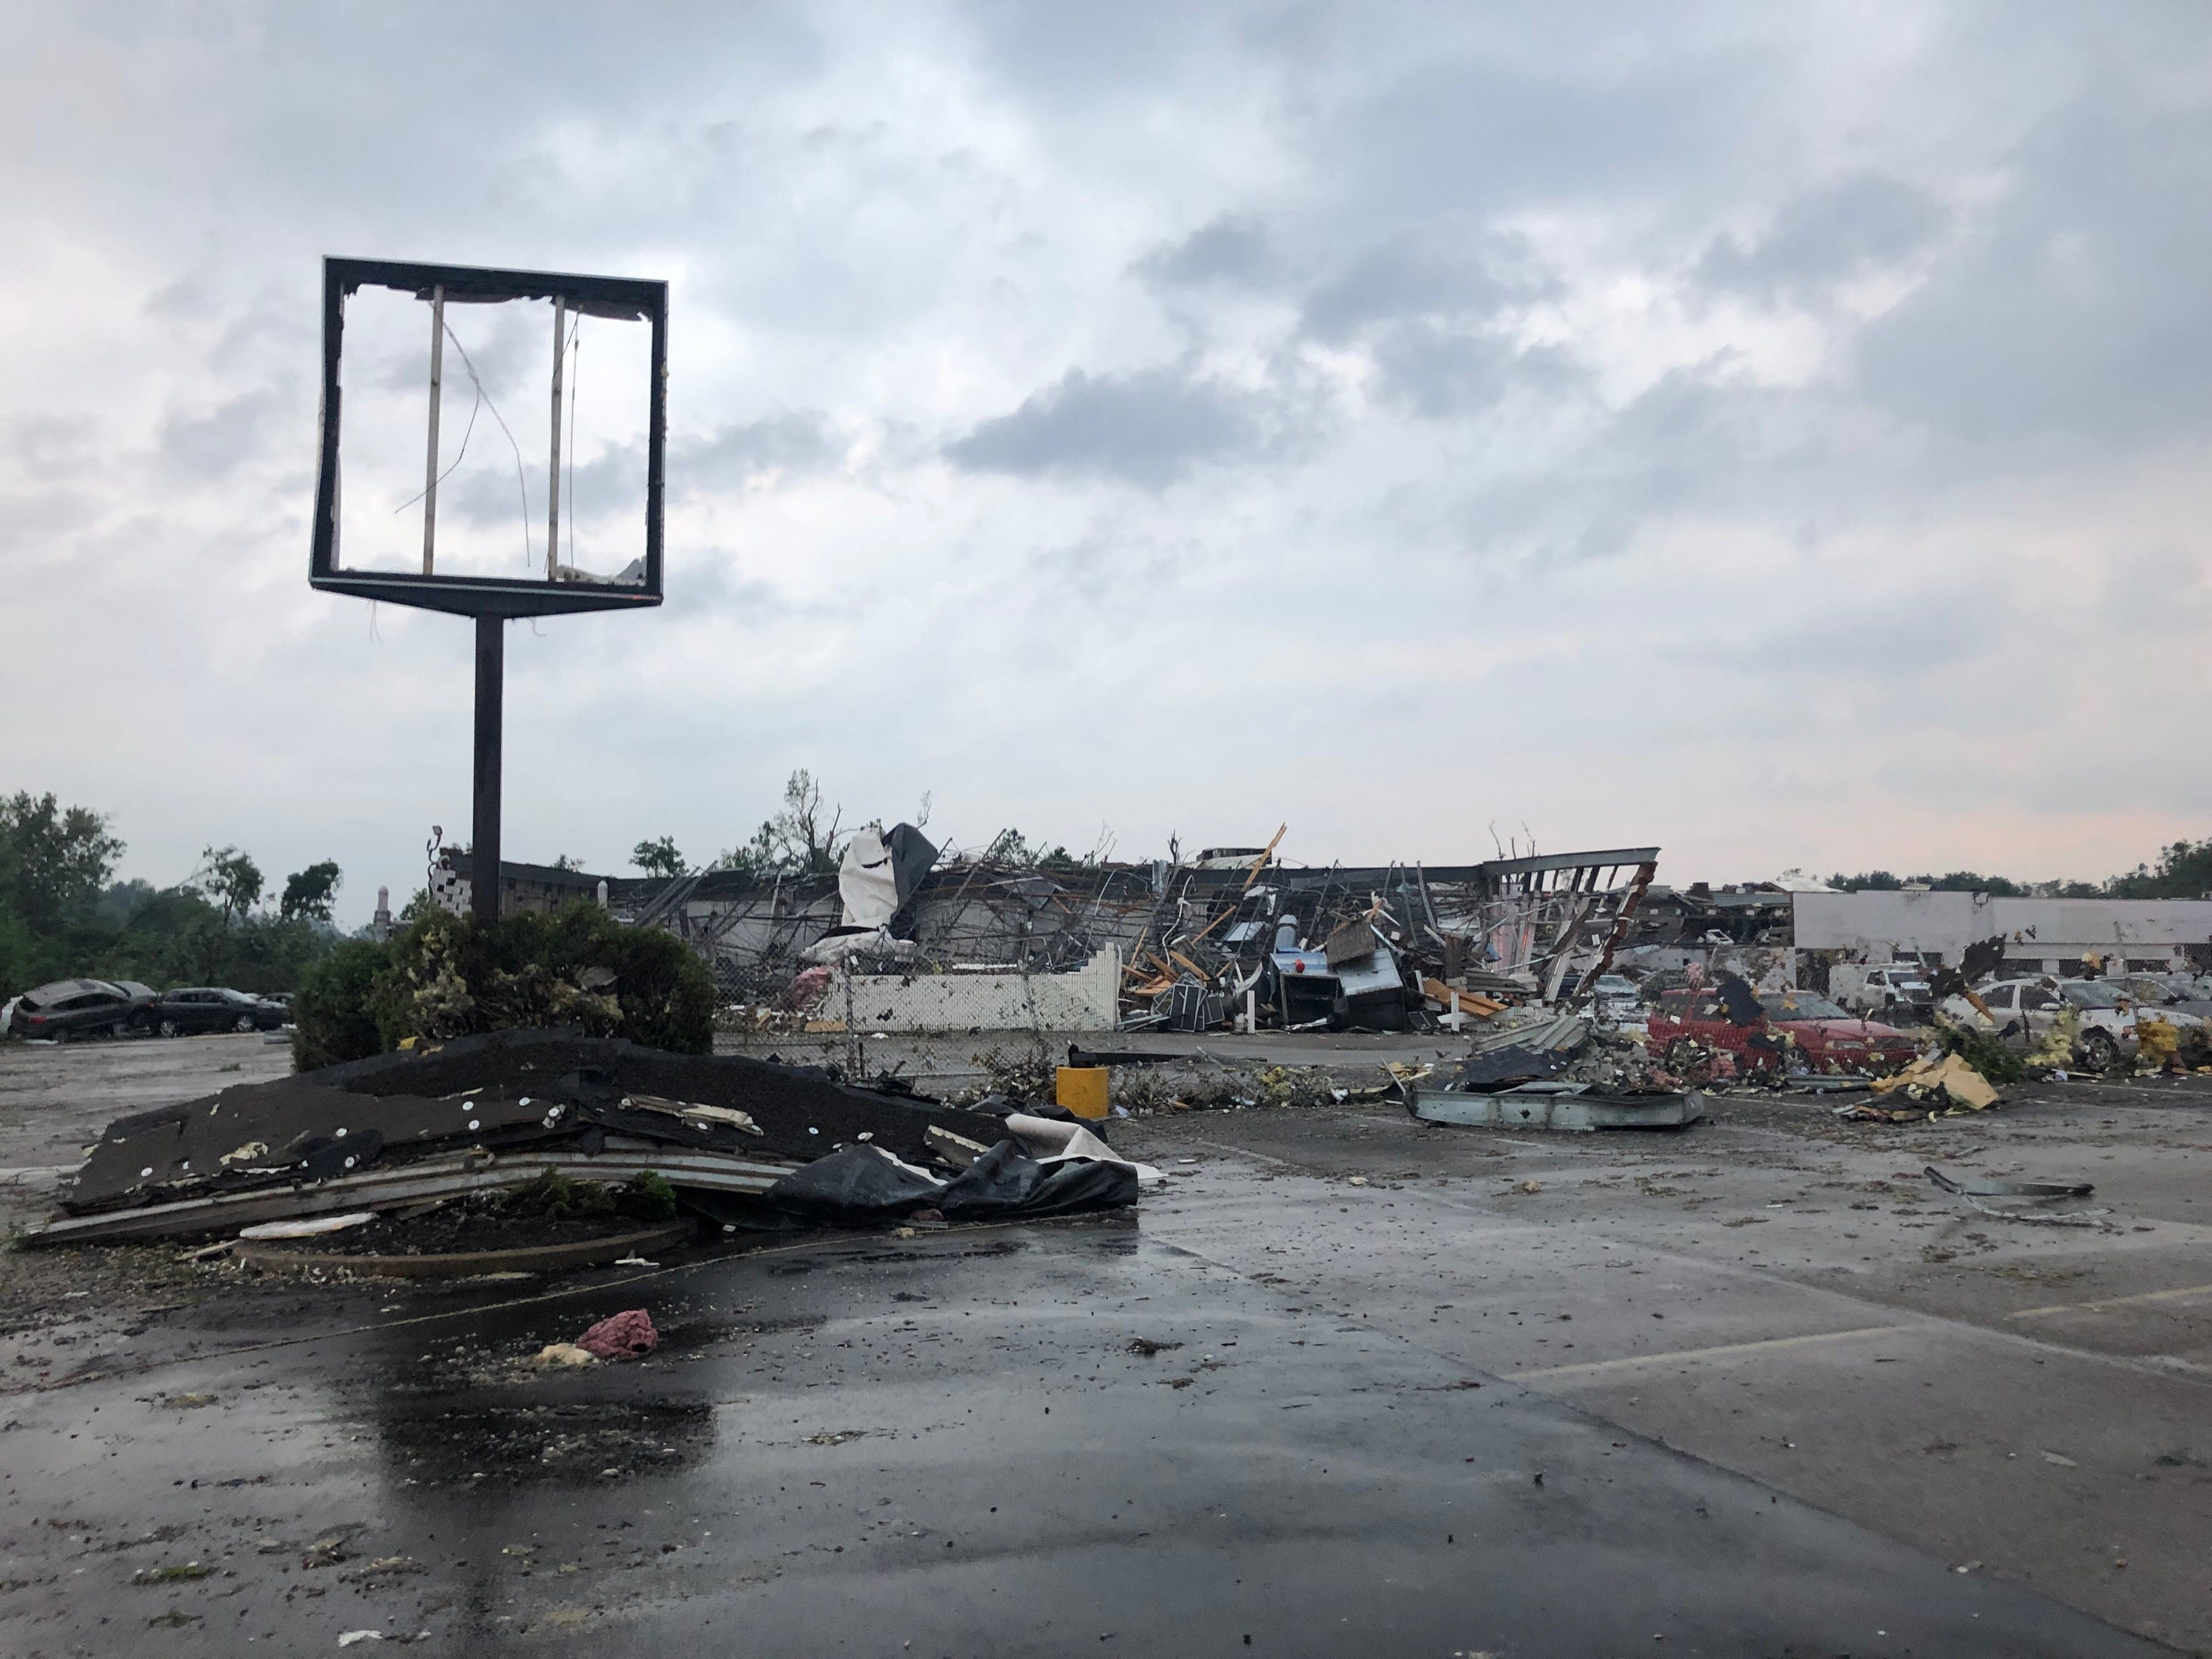 Tornadoes confirmed in Bucks at Solebury and near Neshaminy Mall